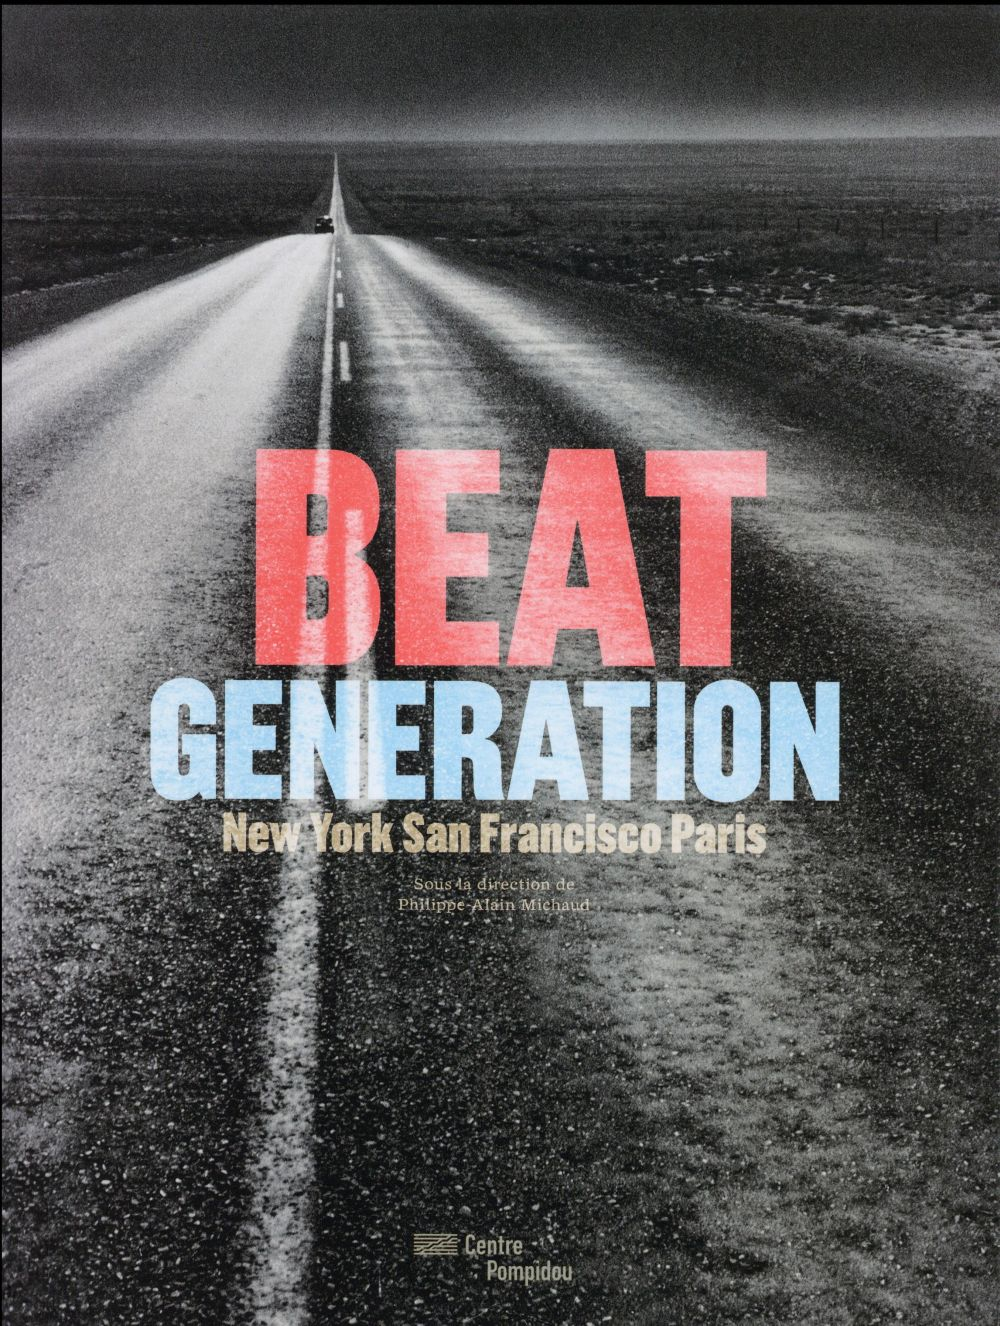 BEAT GENERATION - NEW YORK SAN FRANCISCO PARIS.